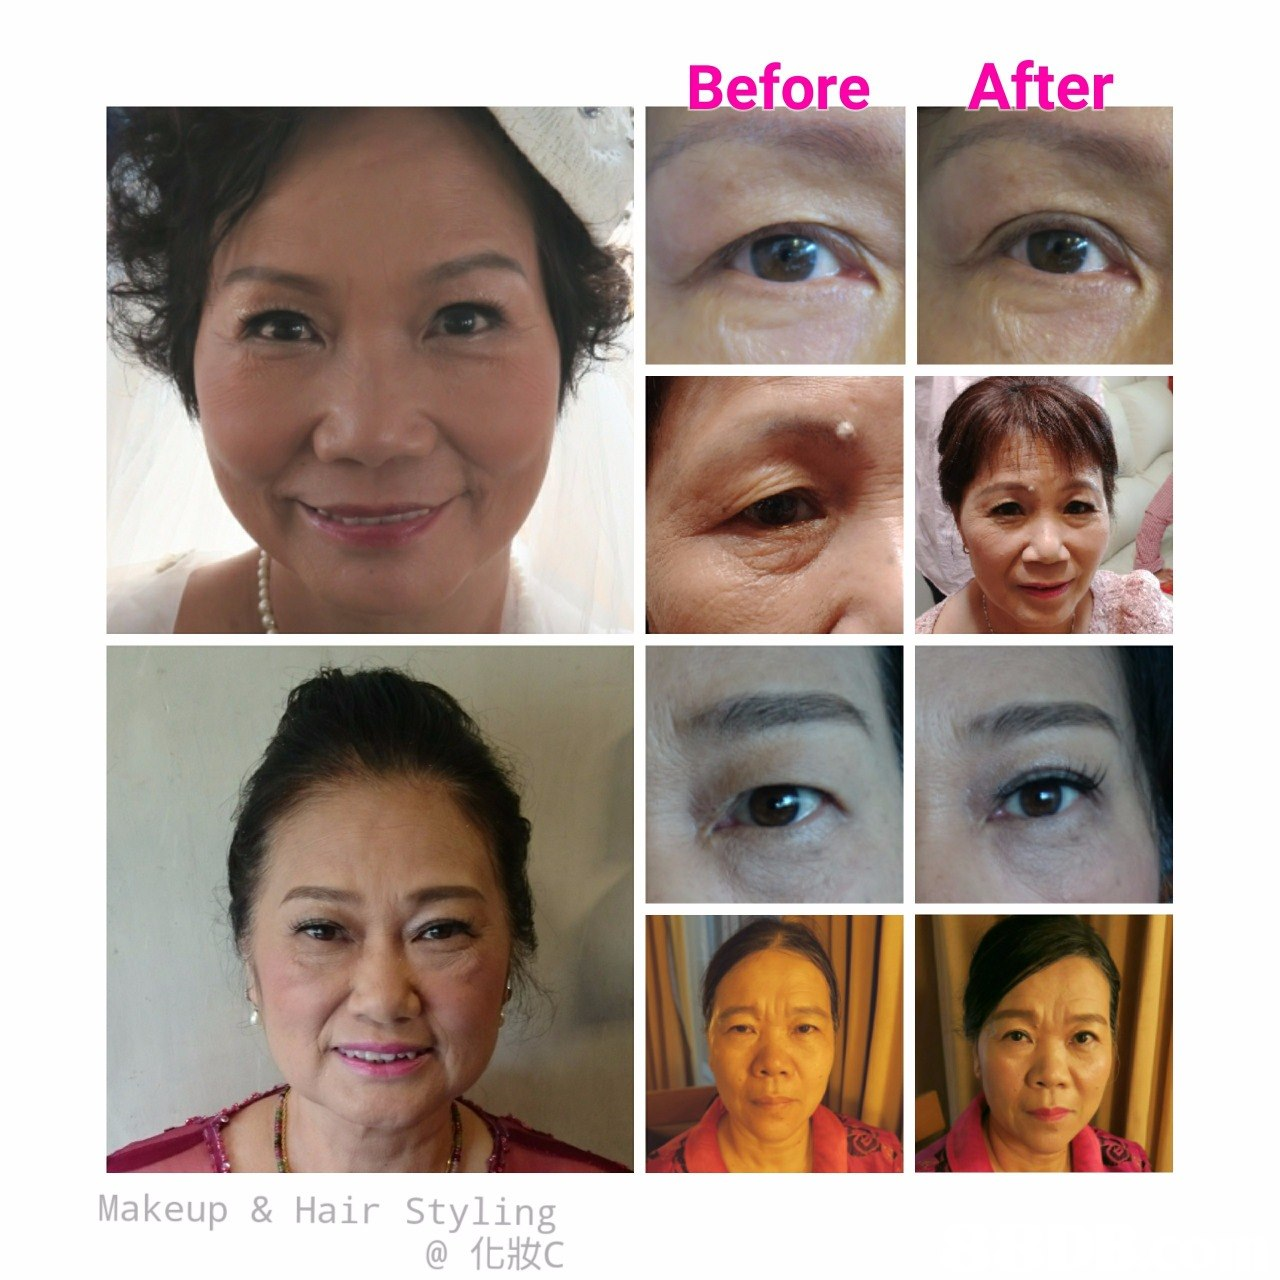 Before After Makeup & Hair Styling @ 1tic,eyebrow,face,skin,cheek,facial expression